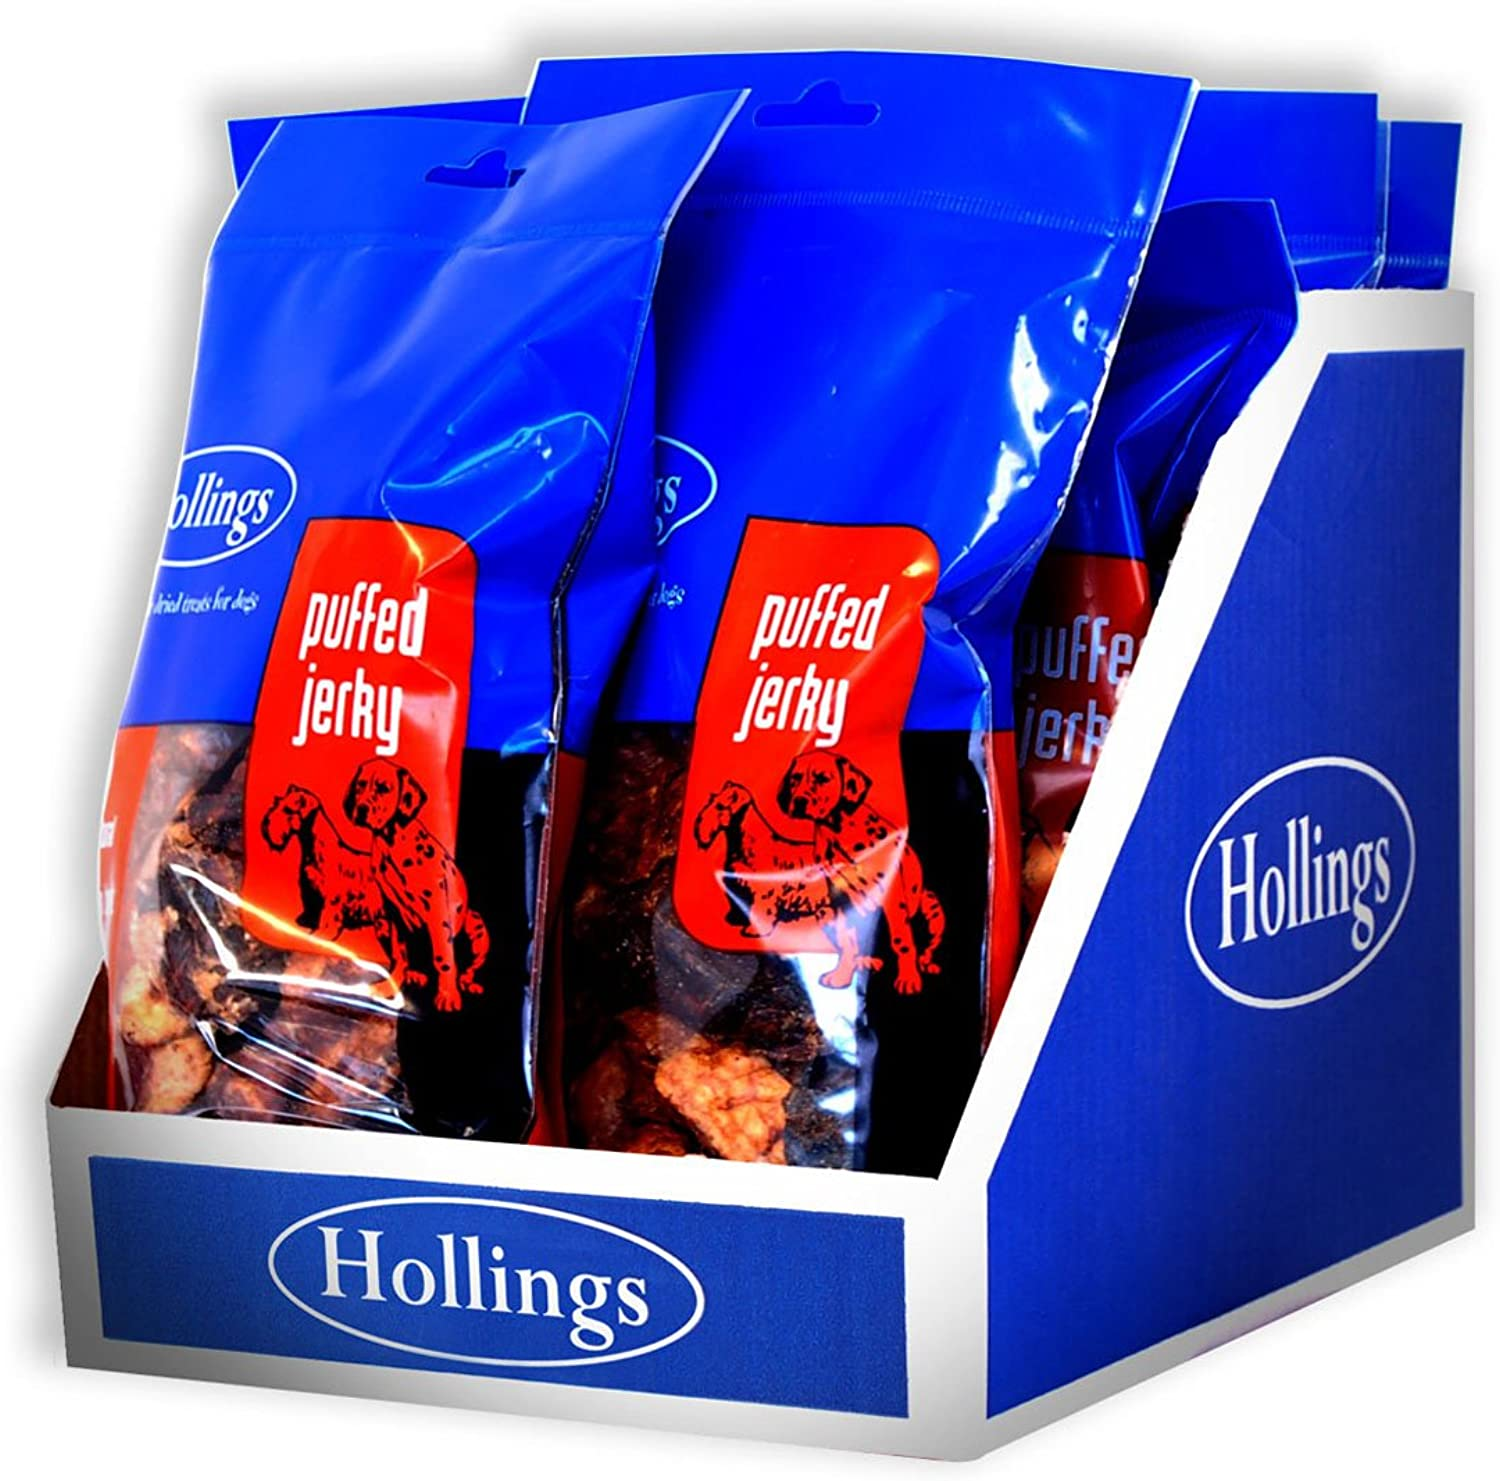 Hollings Ltd Hollings Puffed Jerky Display 100G